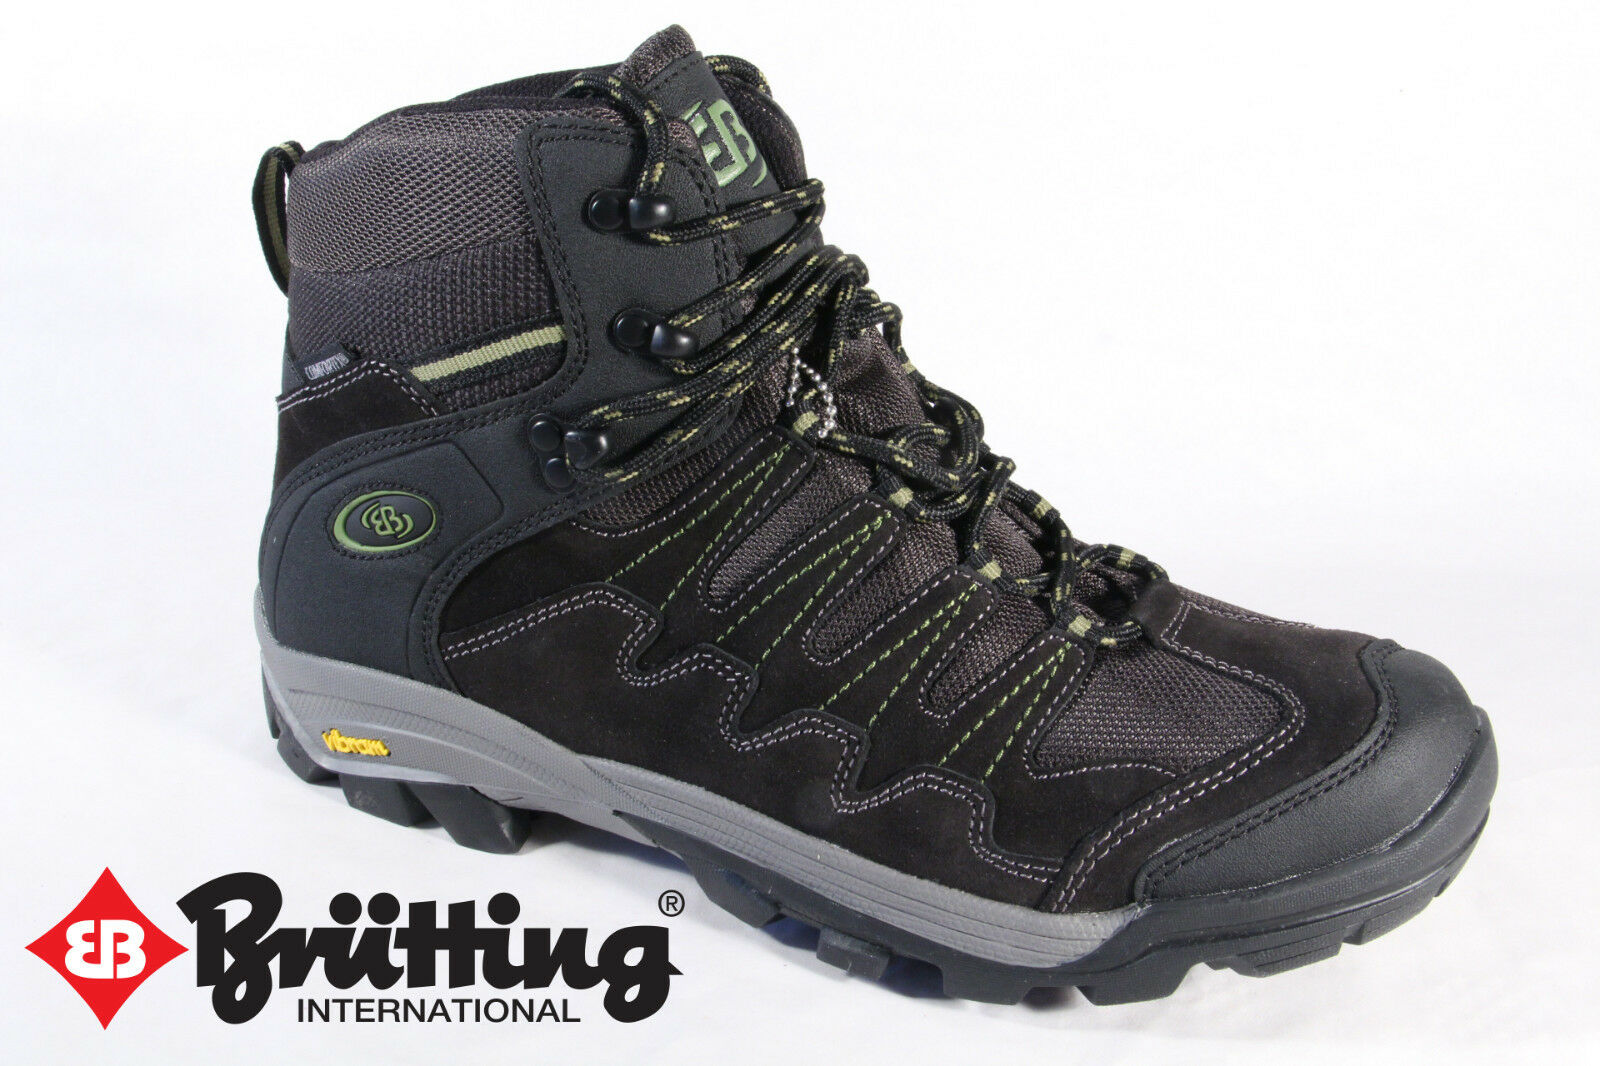 Brütting Hiking Boots Boots Real Leather Waterproof Black 221097 New